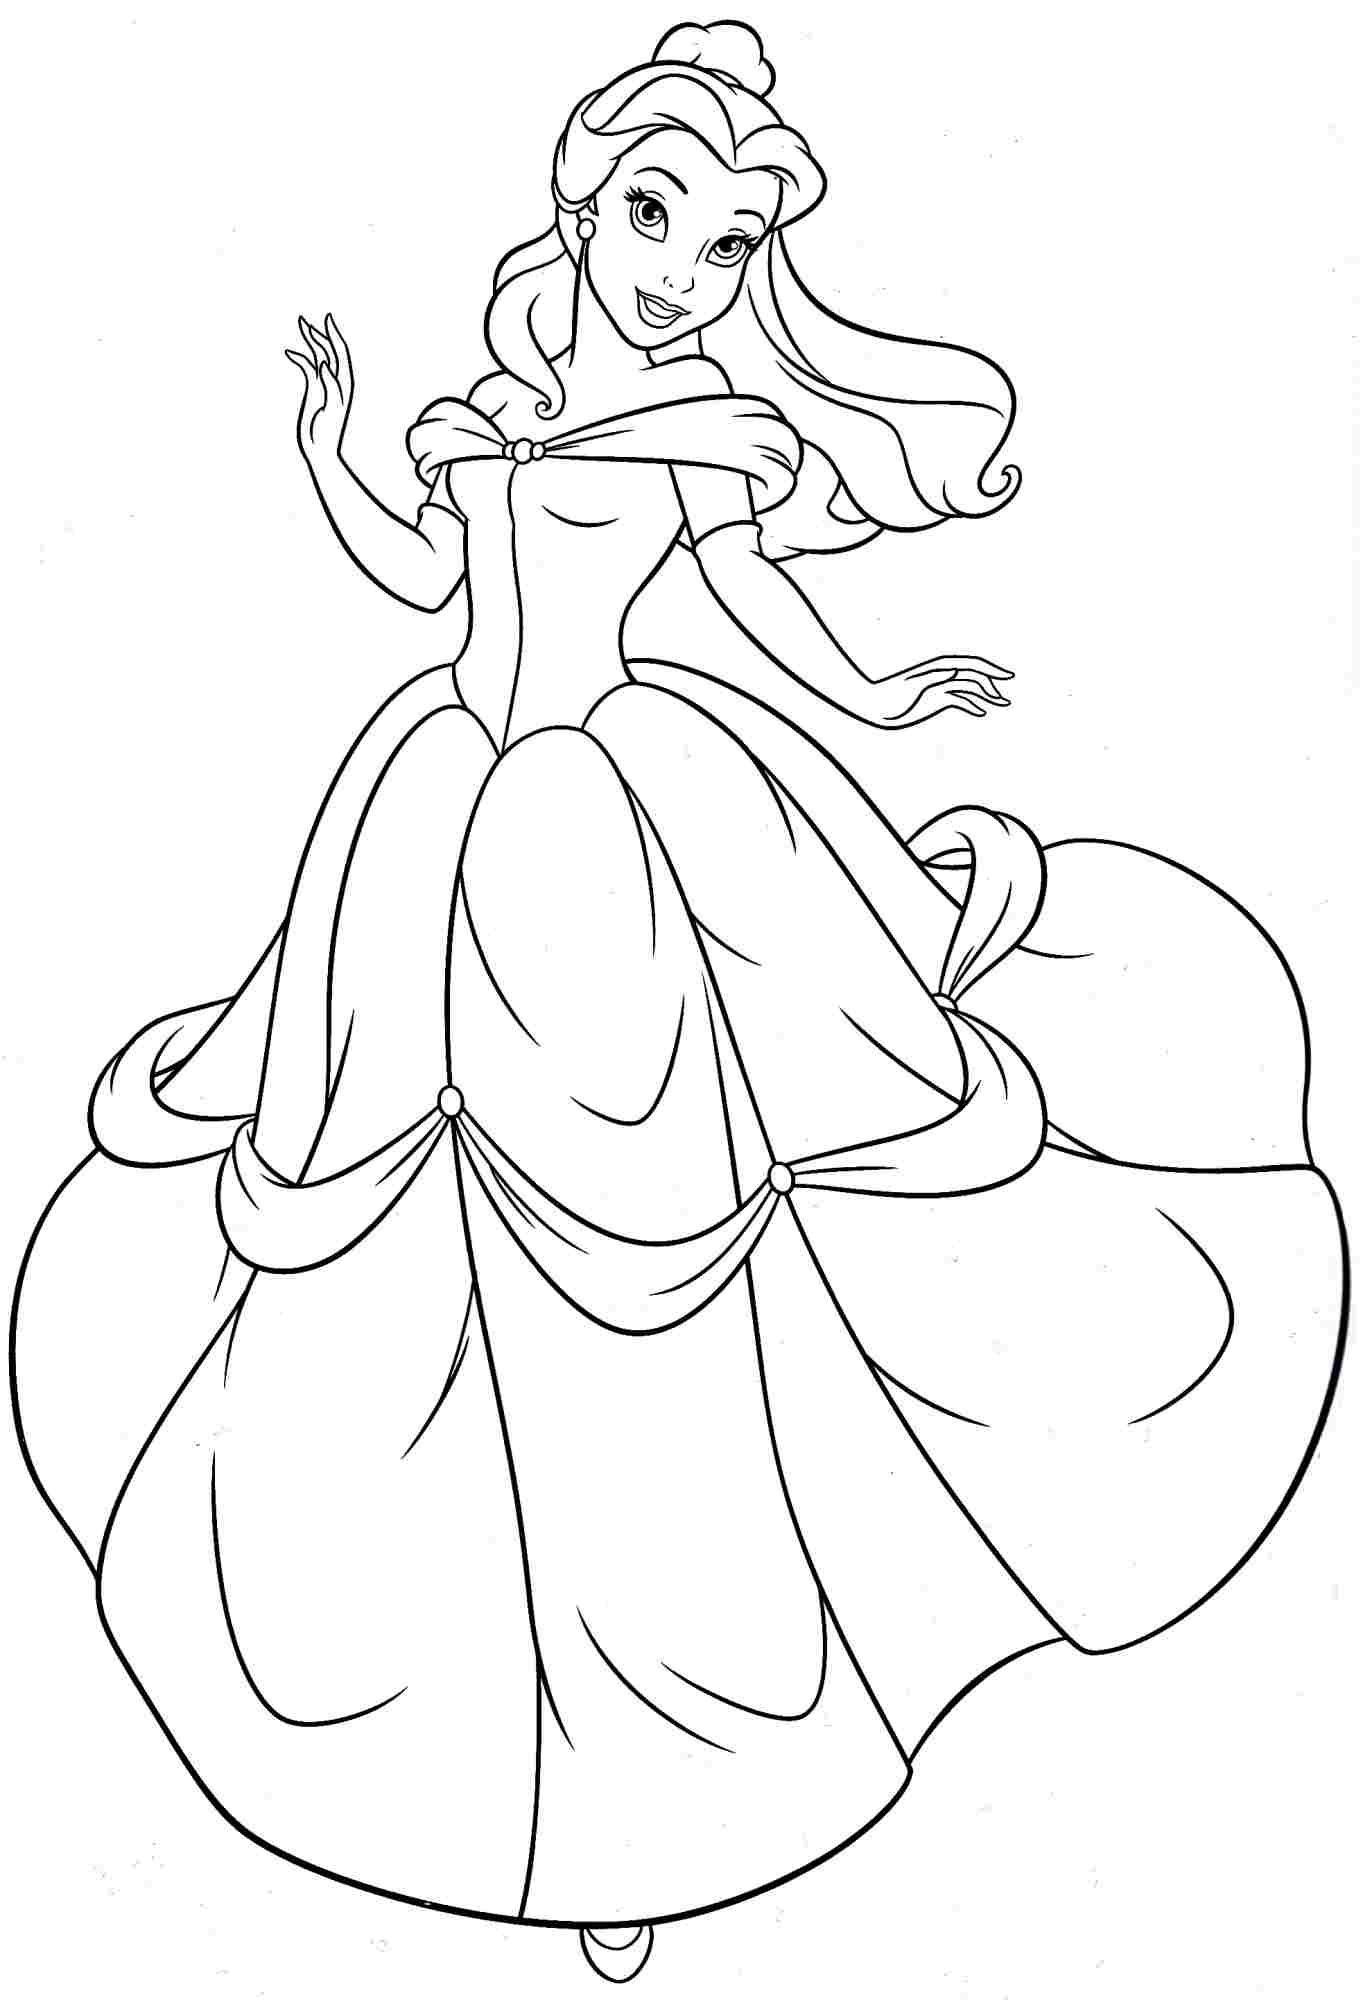 coloring pages for girls disney disney princesses 10 coloring page central sketch coloring coloring pages girls disney for